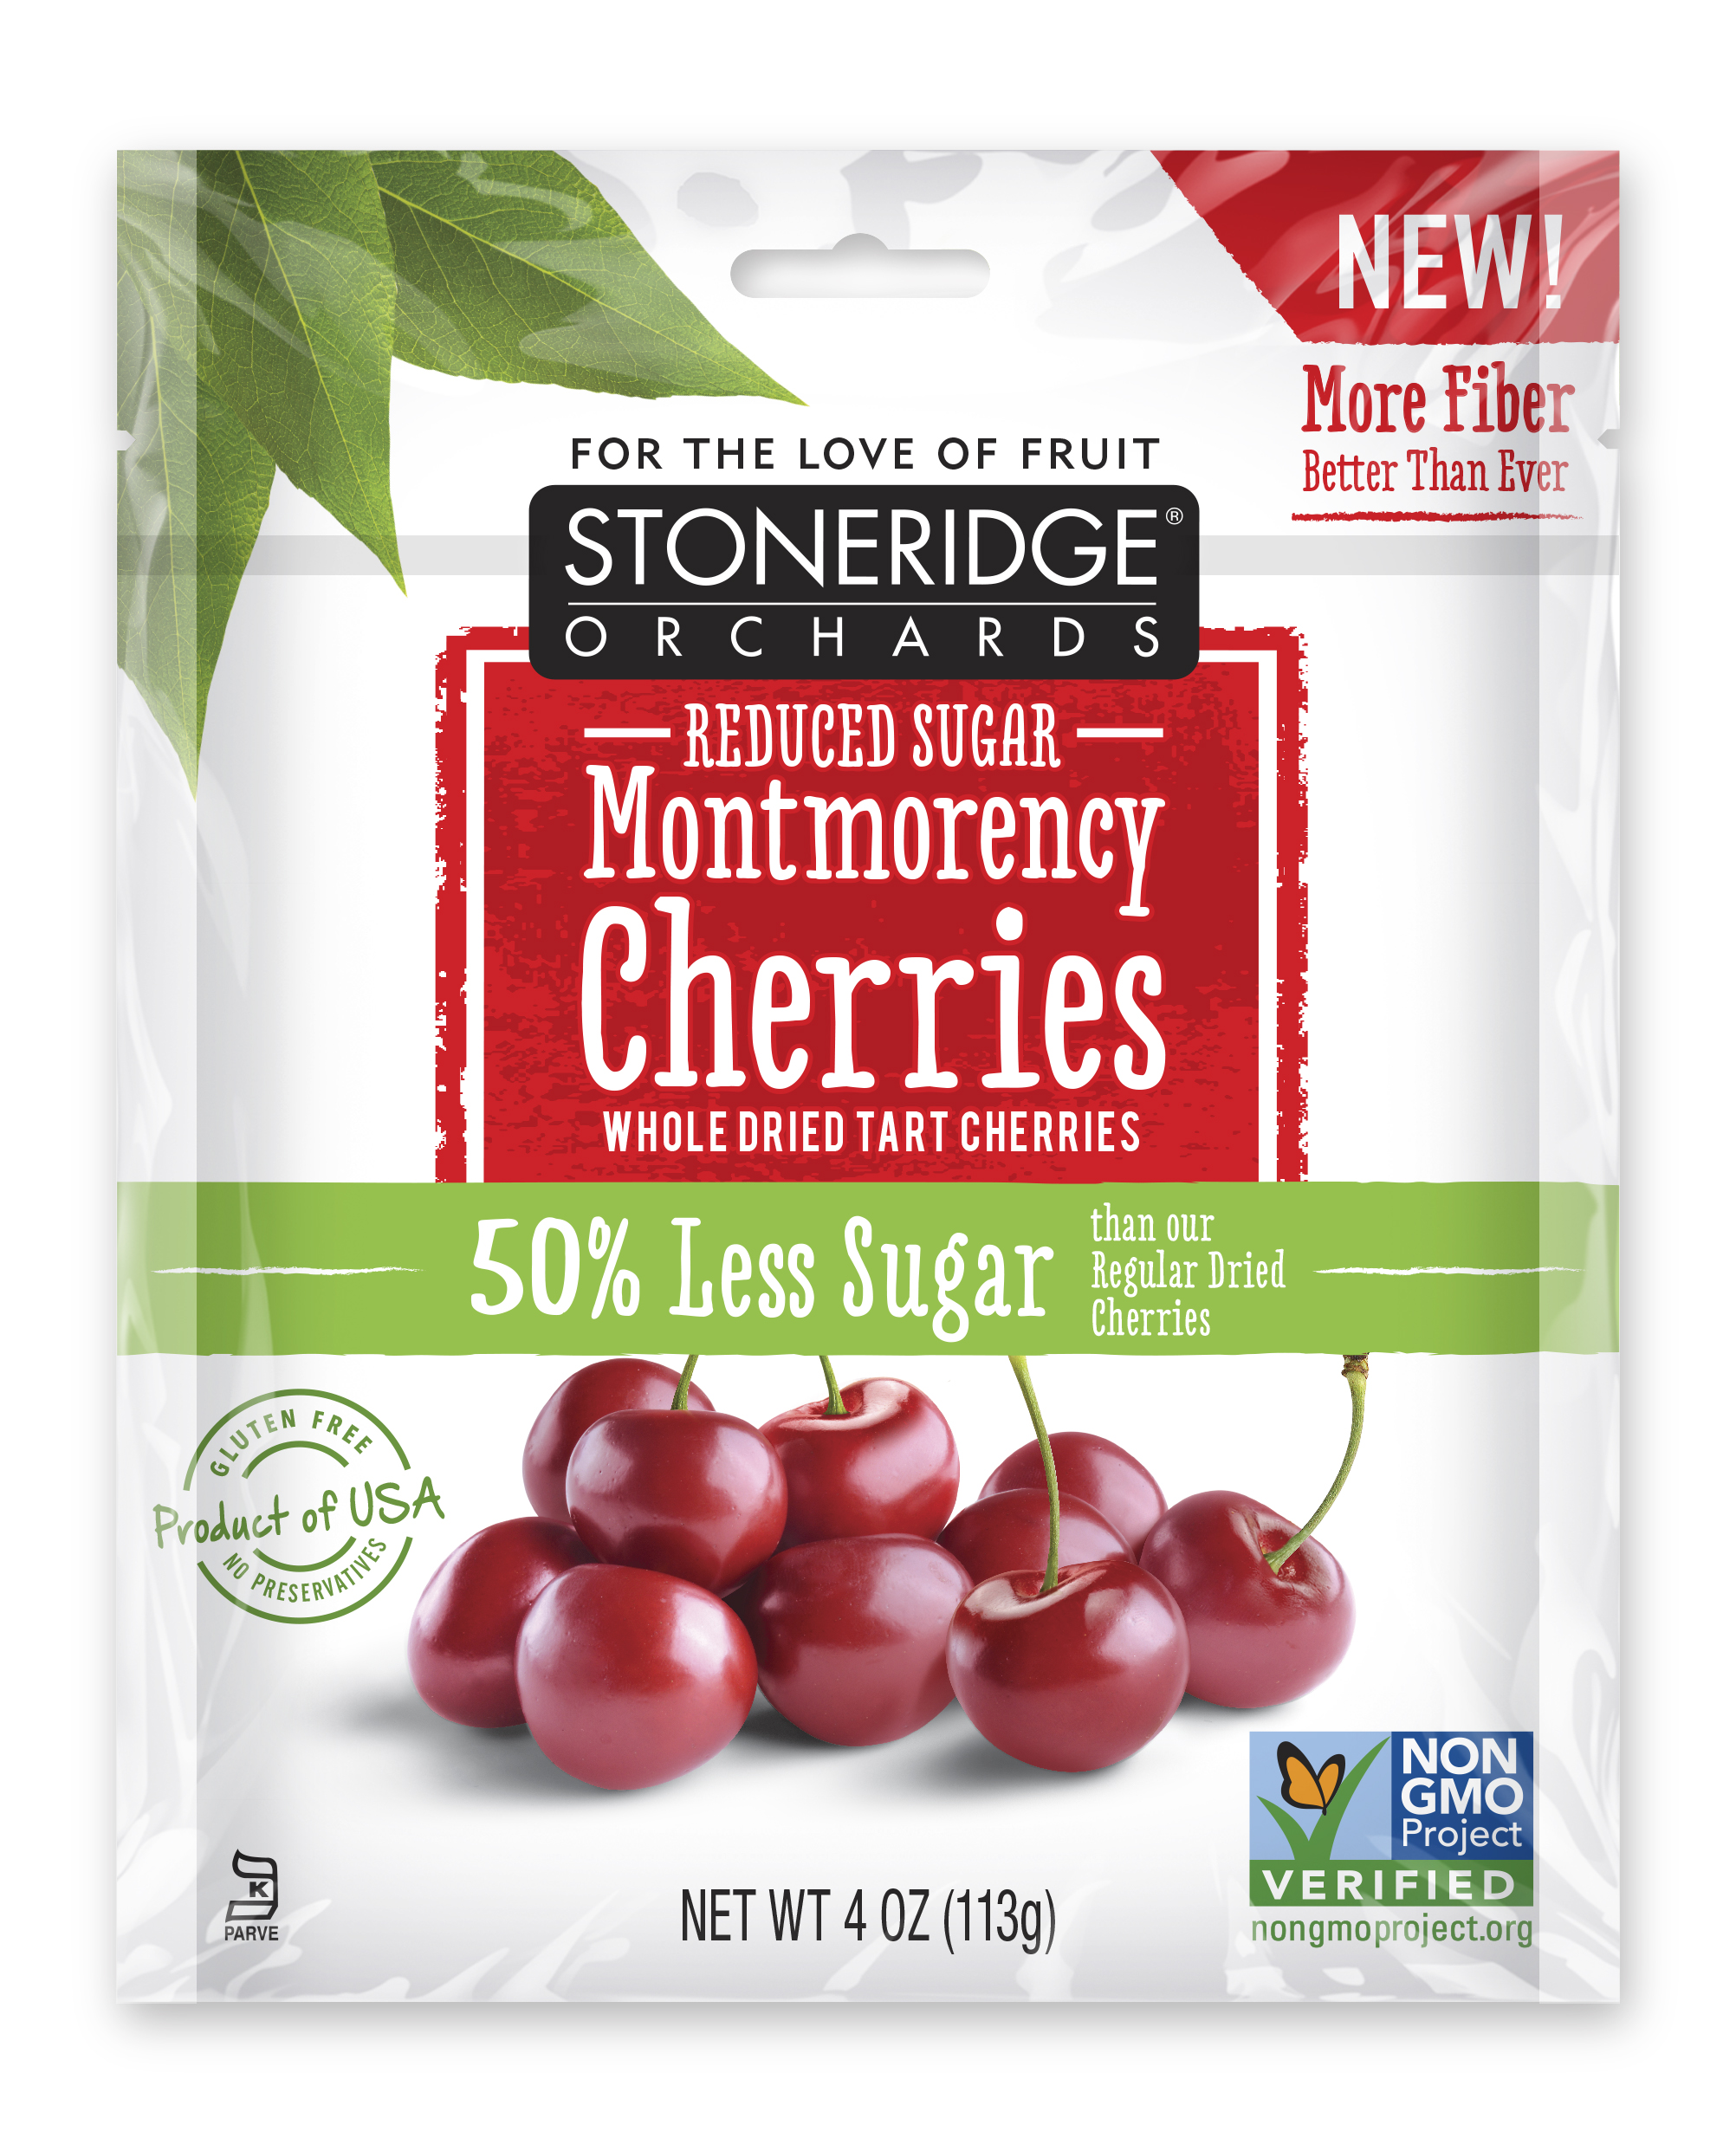 Stoneridge Orchards Reduced Sugar Montmorency Cherries